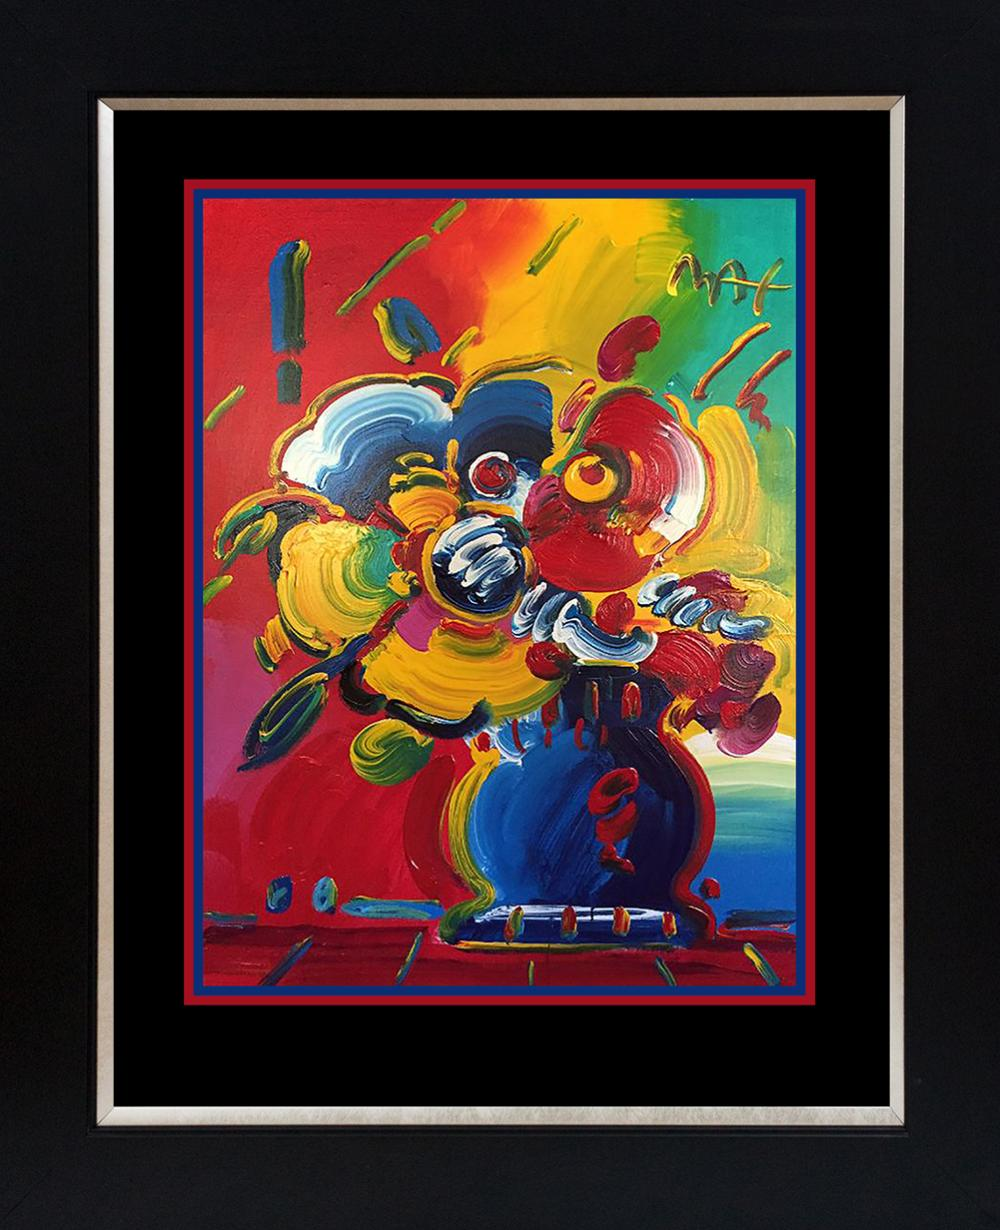 Lot 3578: Original acrylic on canvas by Peter Max 48x36 inches image size